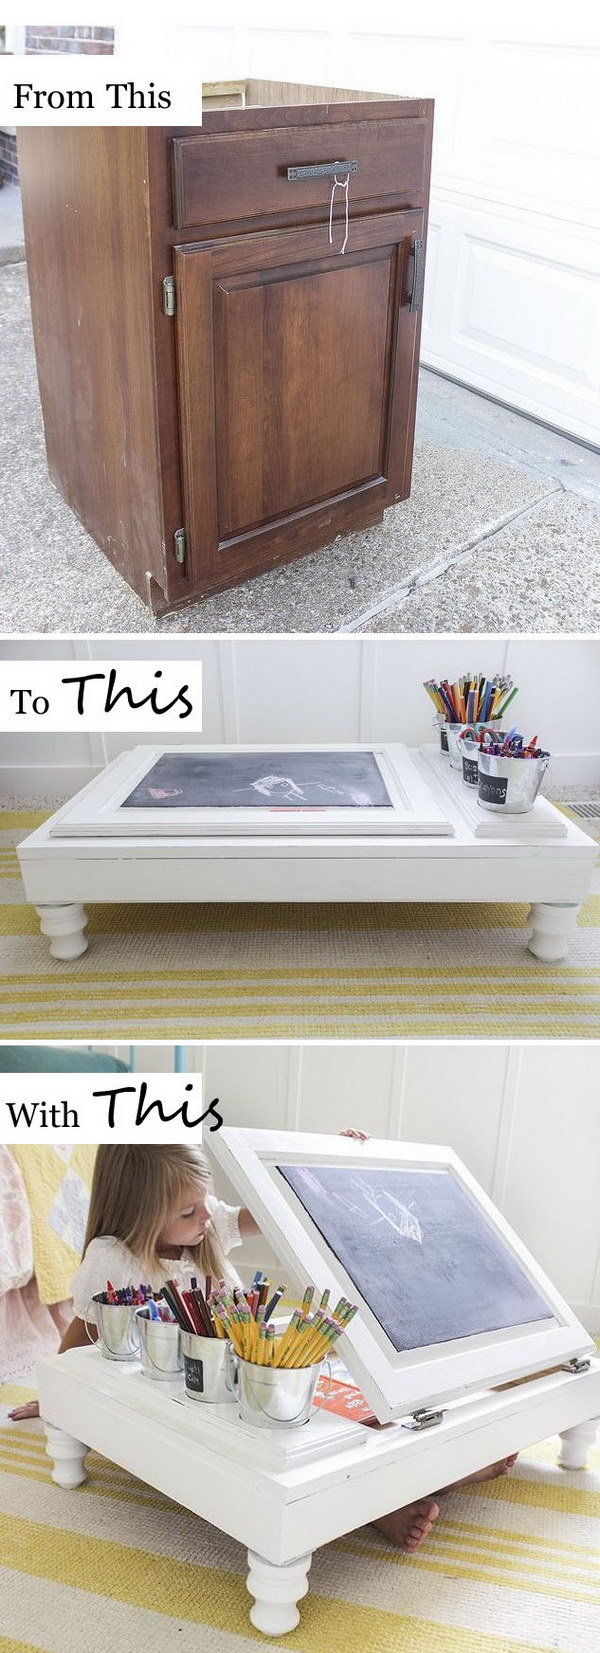 Turn Your Old Kitchen Cabinet Into a Child's Desk.